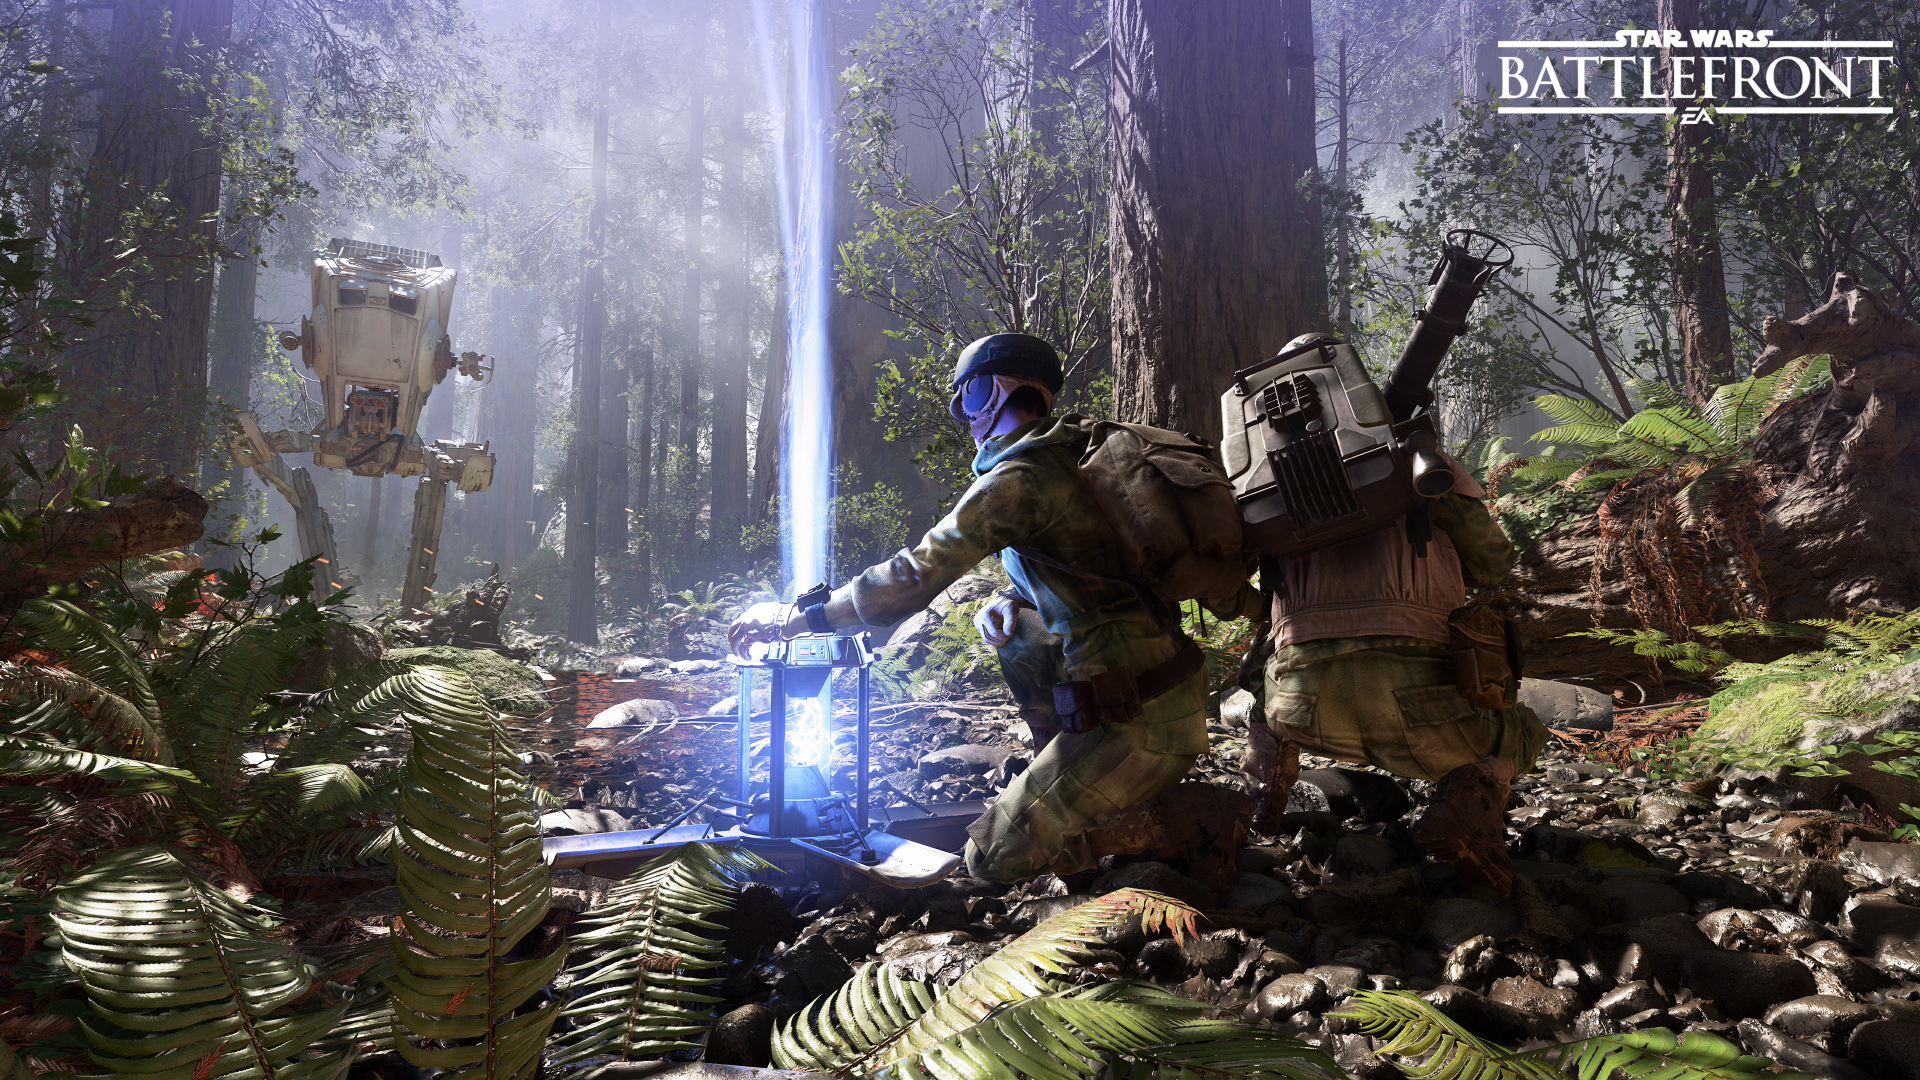 Wield The Most Powerful Assets In Star Wars Battlefront By Finding Powerups On The Map